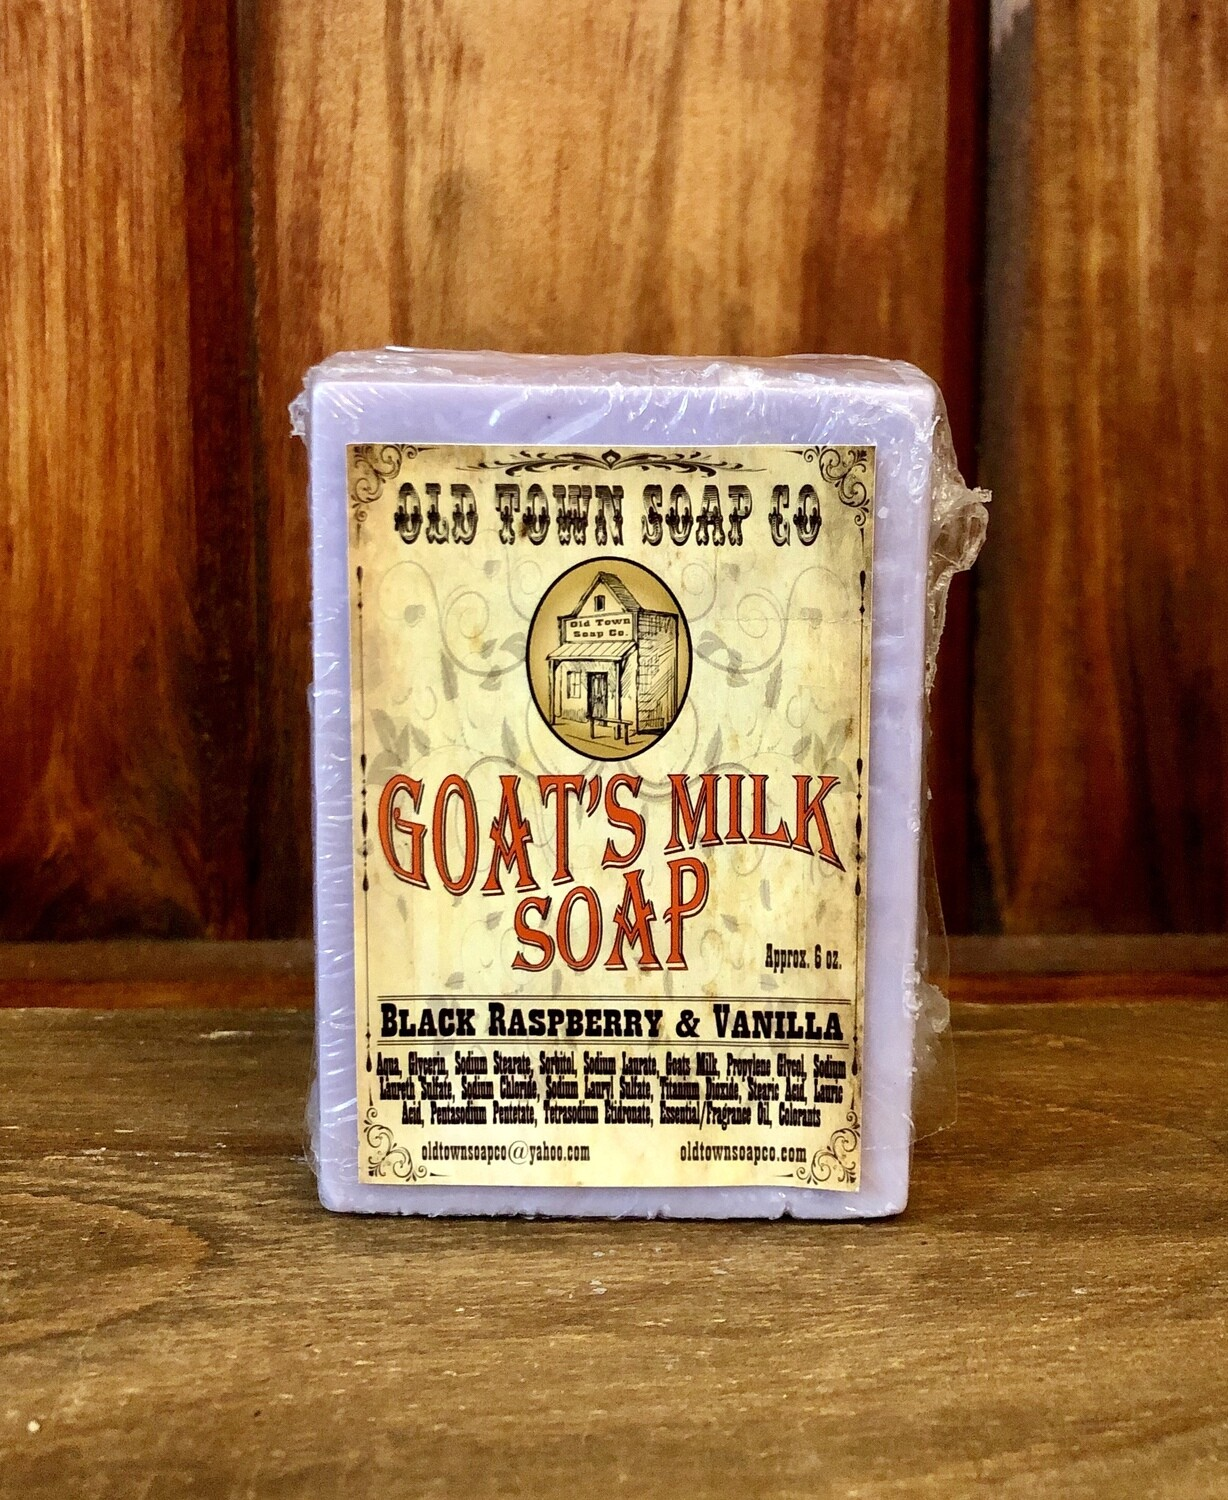 Black Raspberry & Vanilla -Goat's Milk Soap